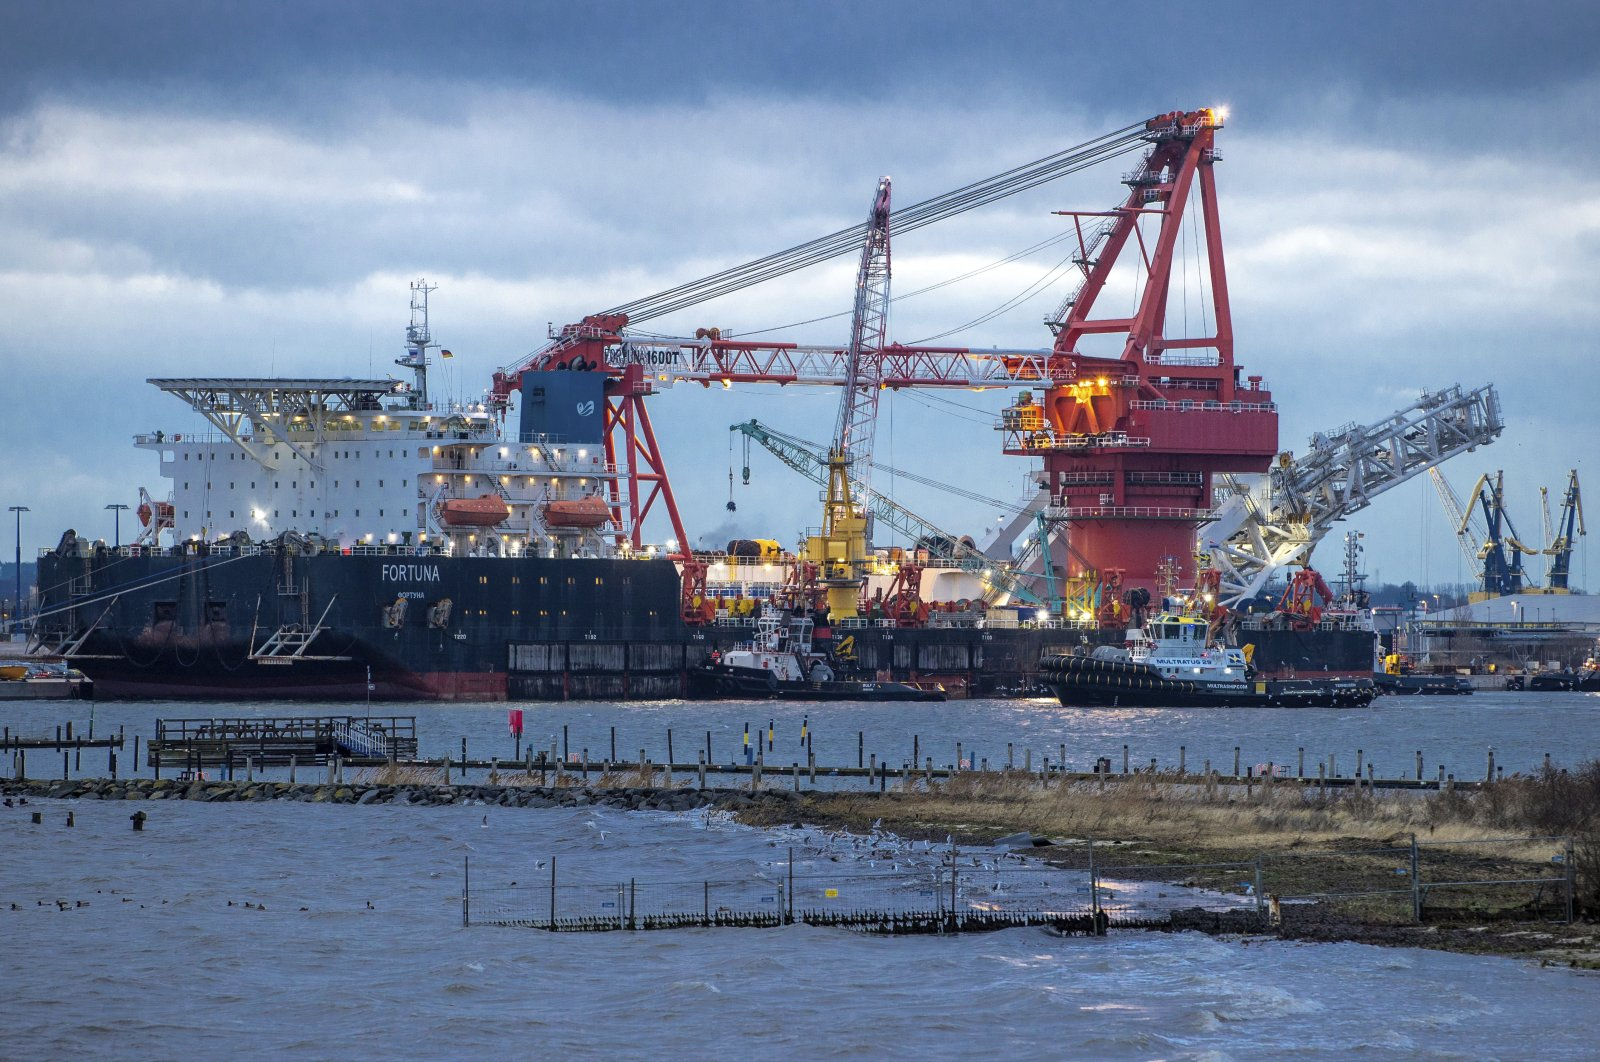 """In this Jan. 14, 2021 file photo, tugboats get into position on the Russian pipe-laying vessel """"Fortuna"""" in the port of Wismar, Germany. (AP Photo)"""